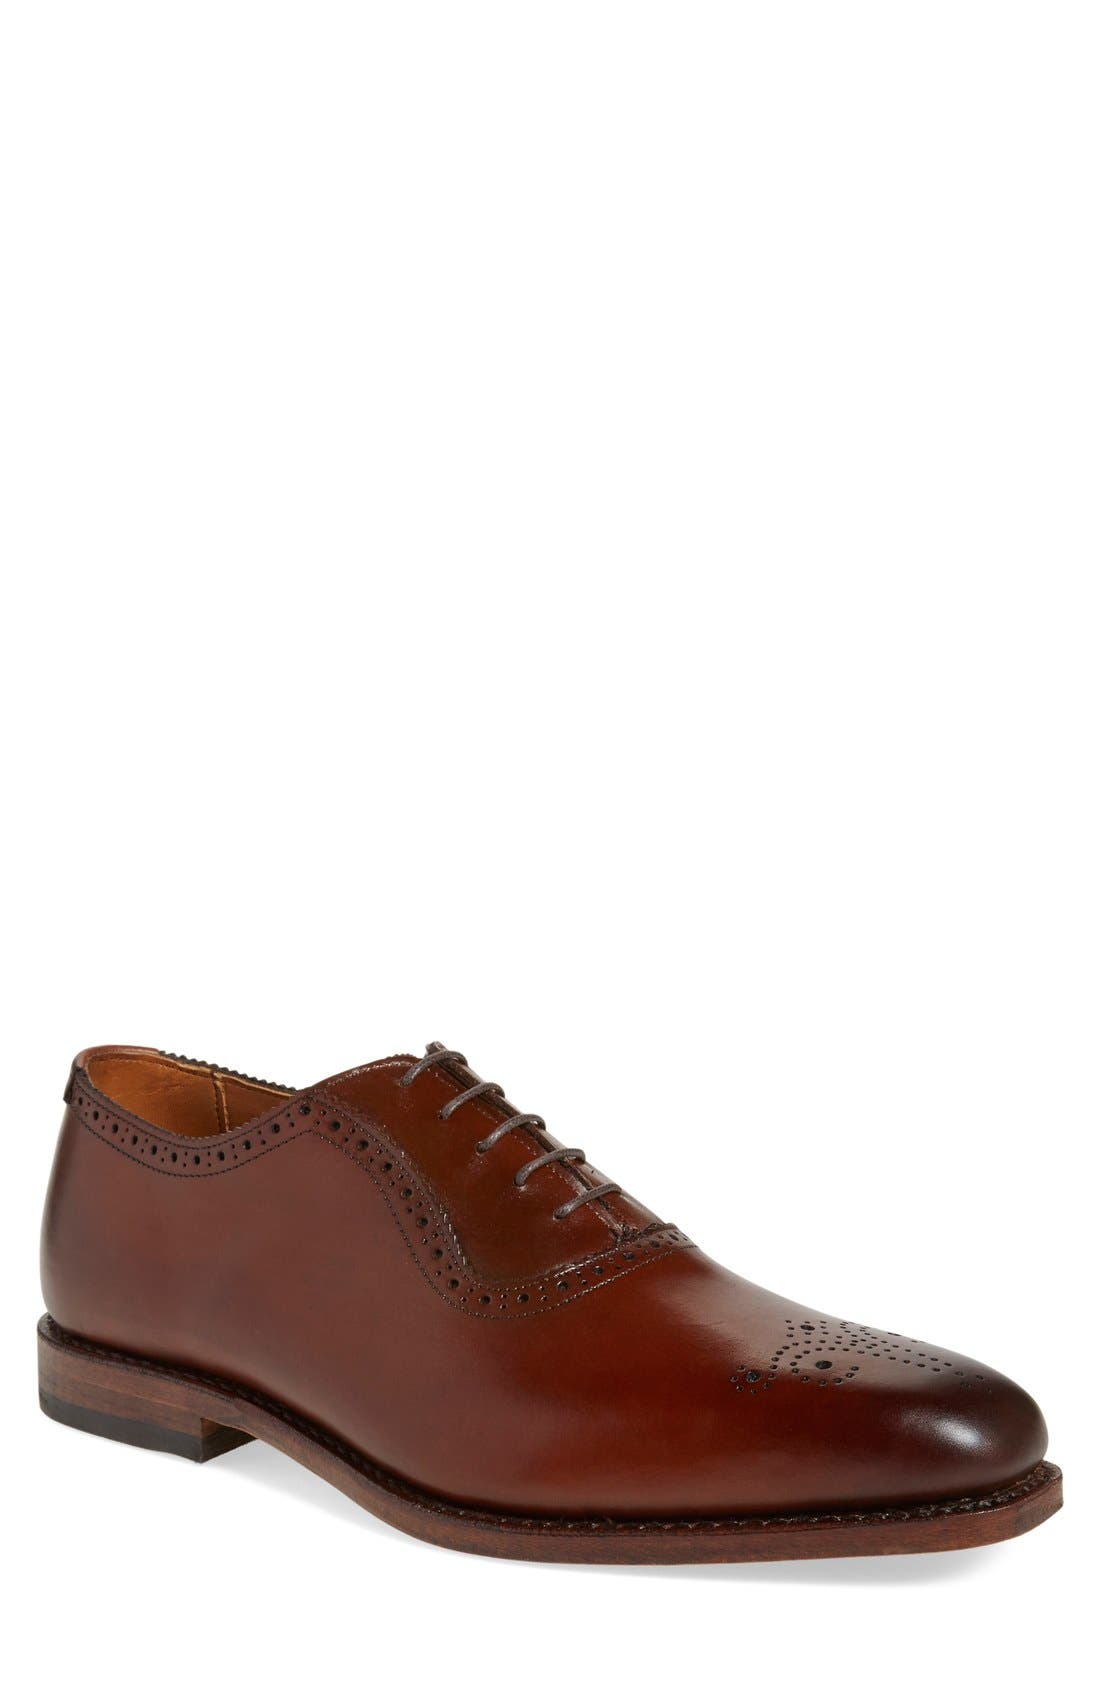 Alternate Image 1 Selected - Allen Edmonds 'Cornwallis' Medallion Toe Oxford (Men)